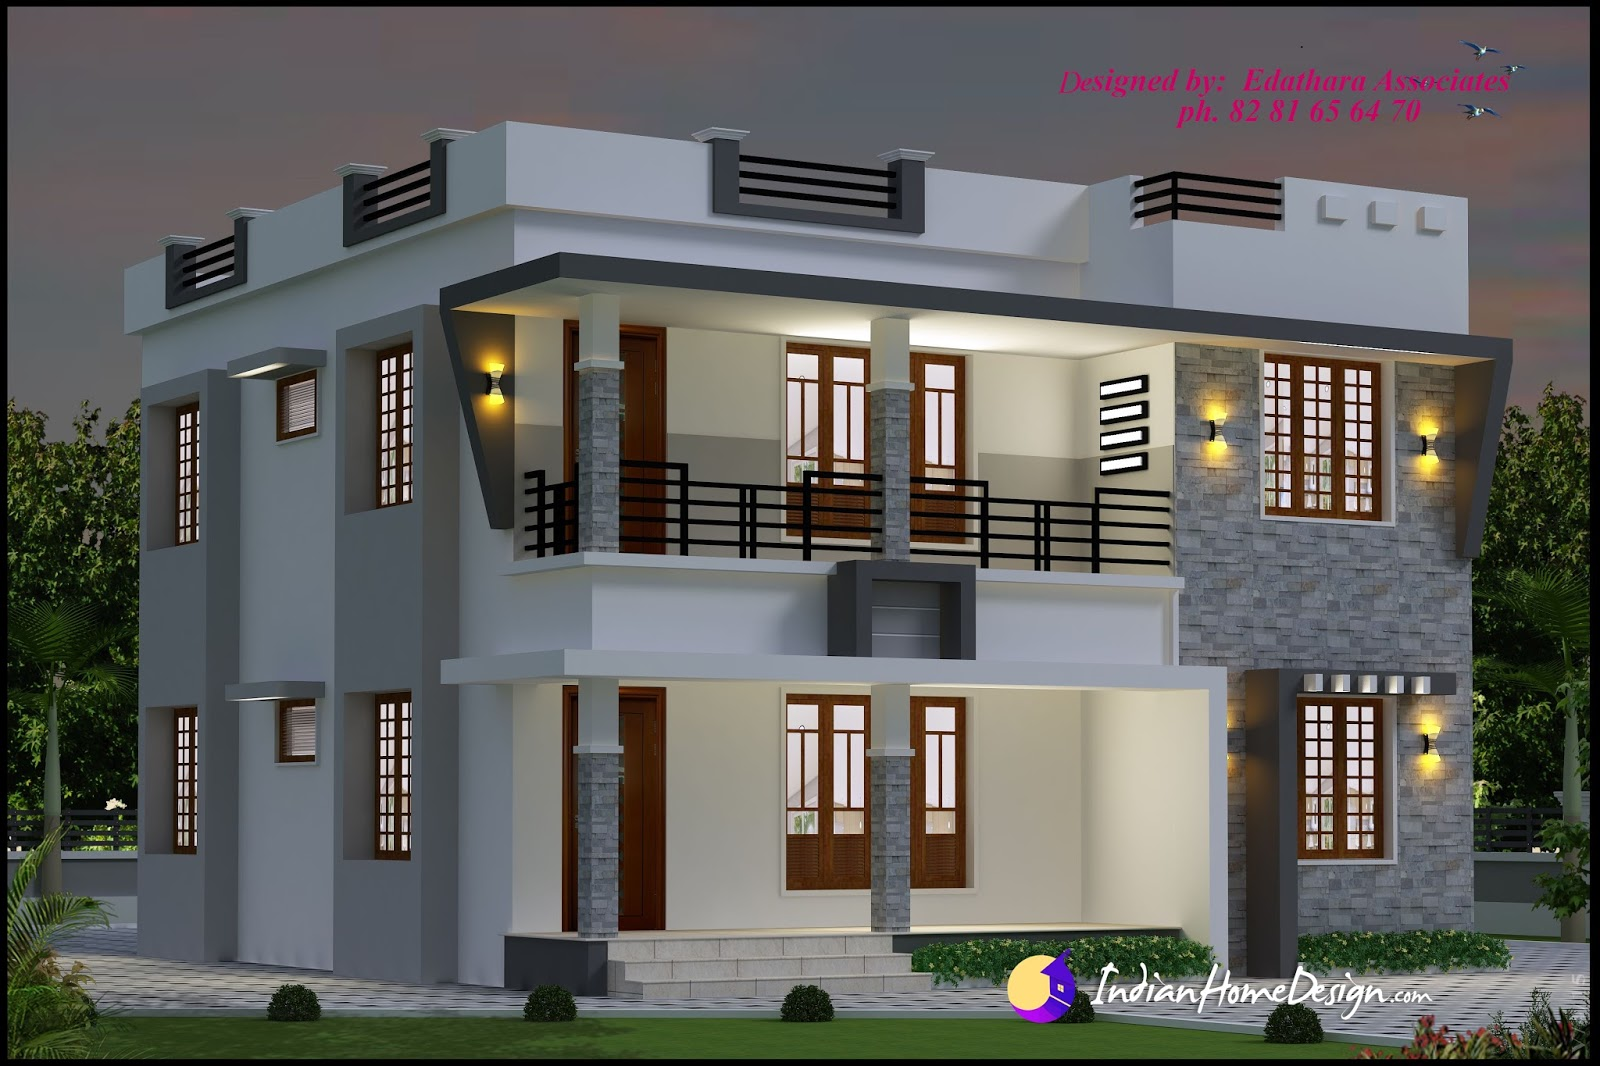 1696 sqft modern double floor kerala home design indian for 2 bedroom house plans in india